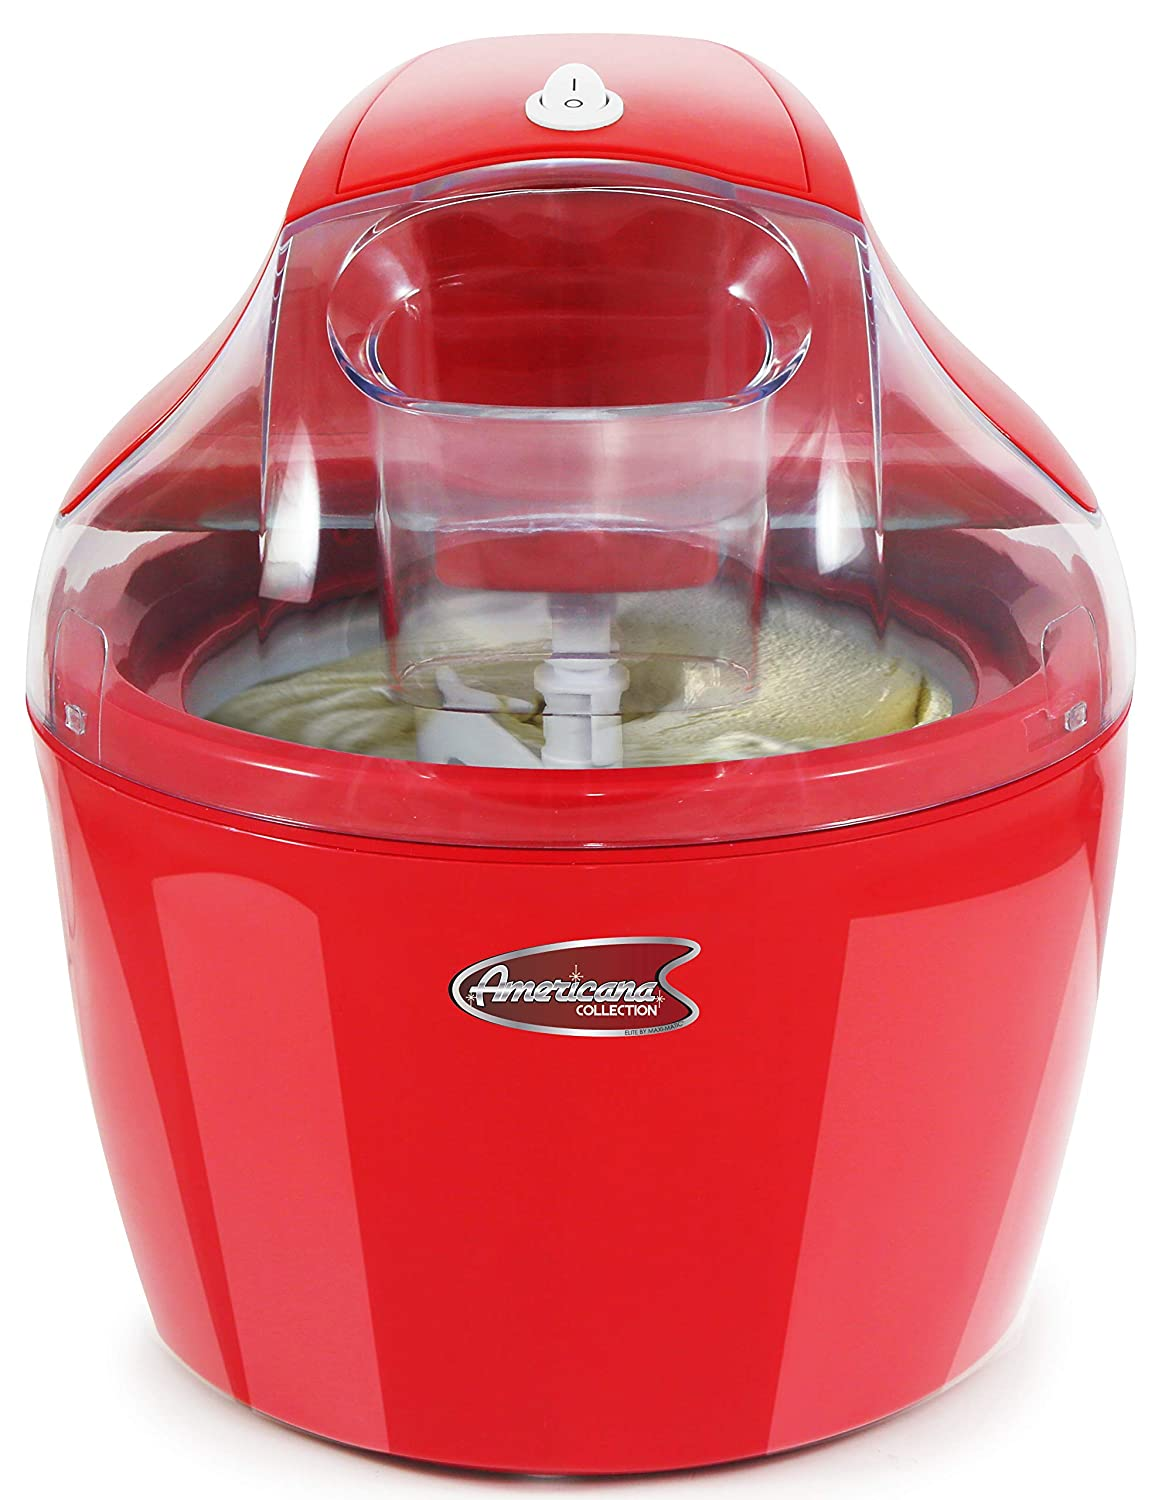 Maxi Matic EIM-1400R Ice Cream Maker with with Quick Freeze Bowl, 1.5 quart, Red